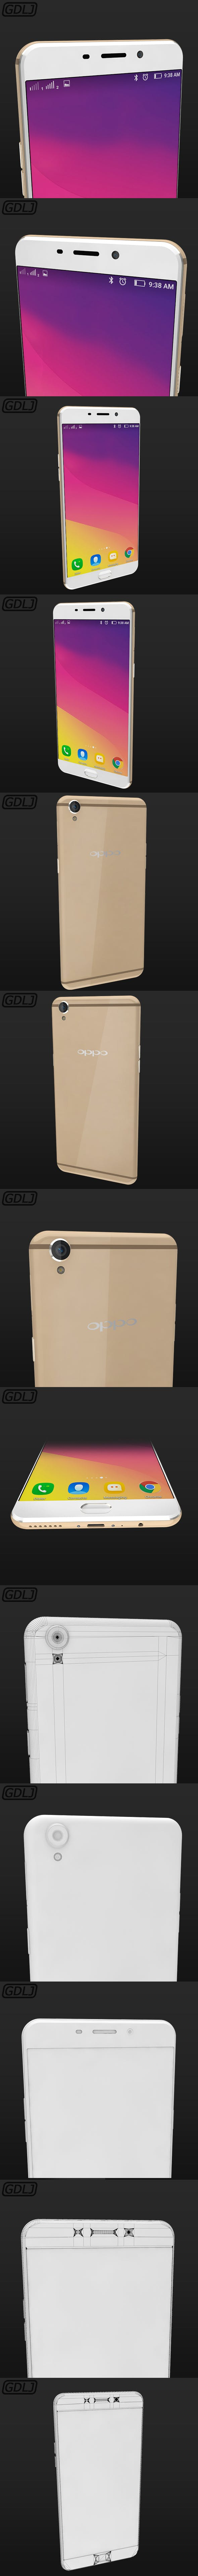 "Oppo R9 Plus ""Very realistic"" - 3DOcean Item for Sale"